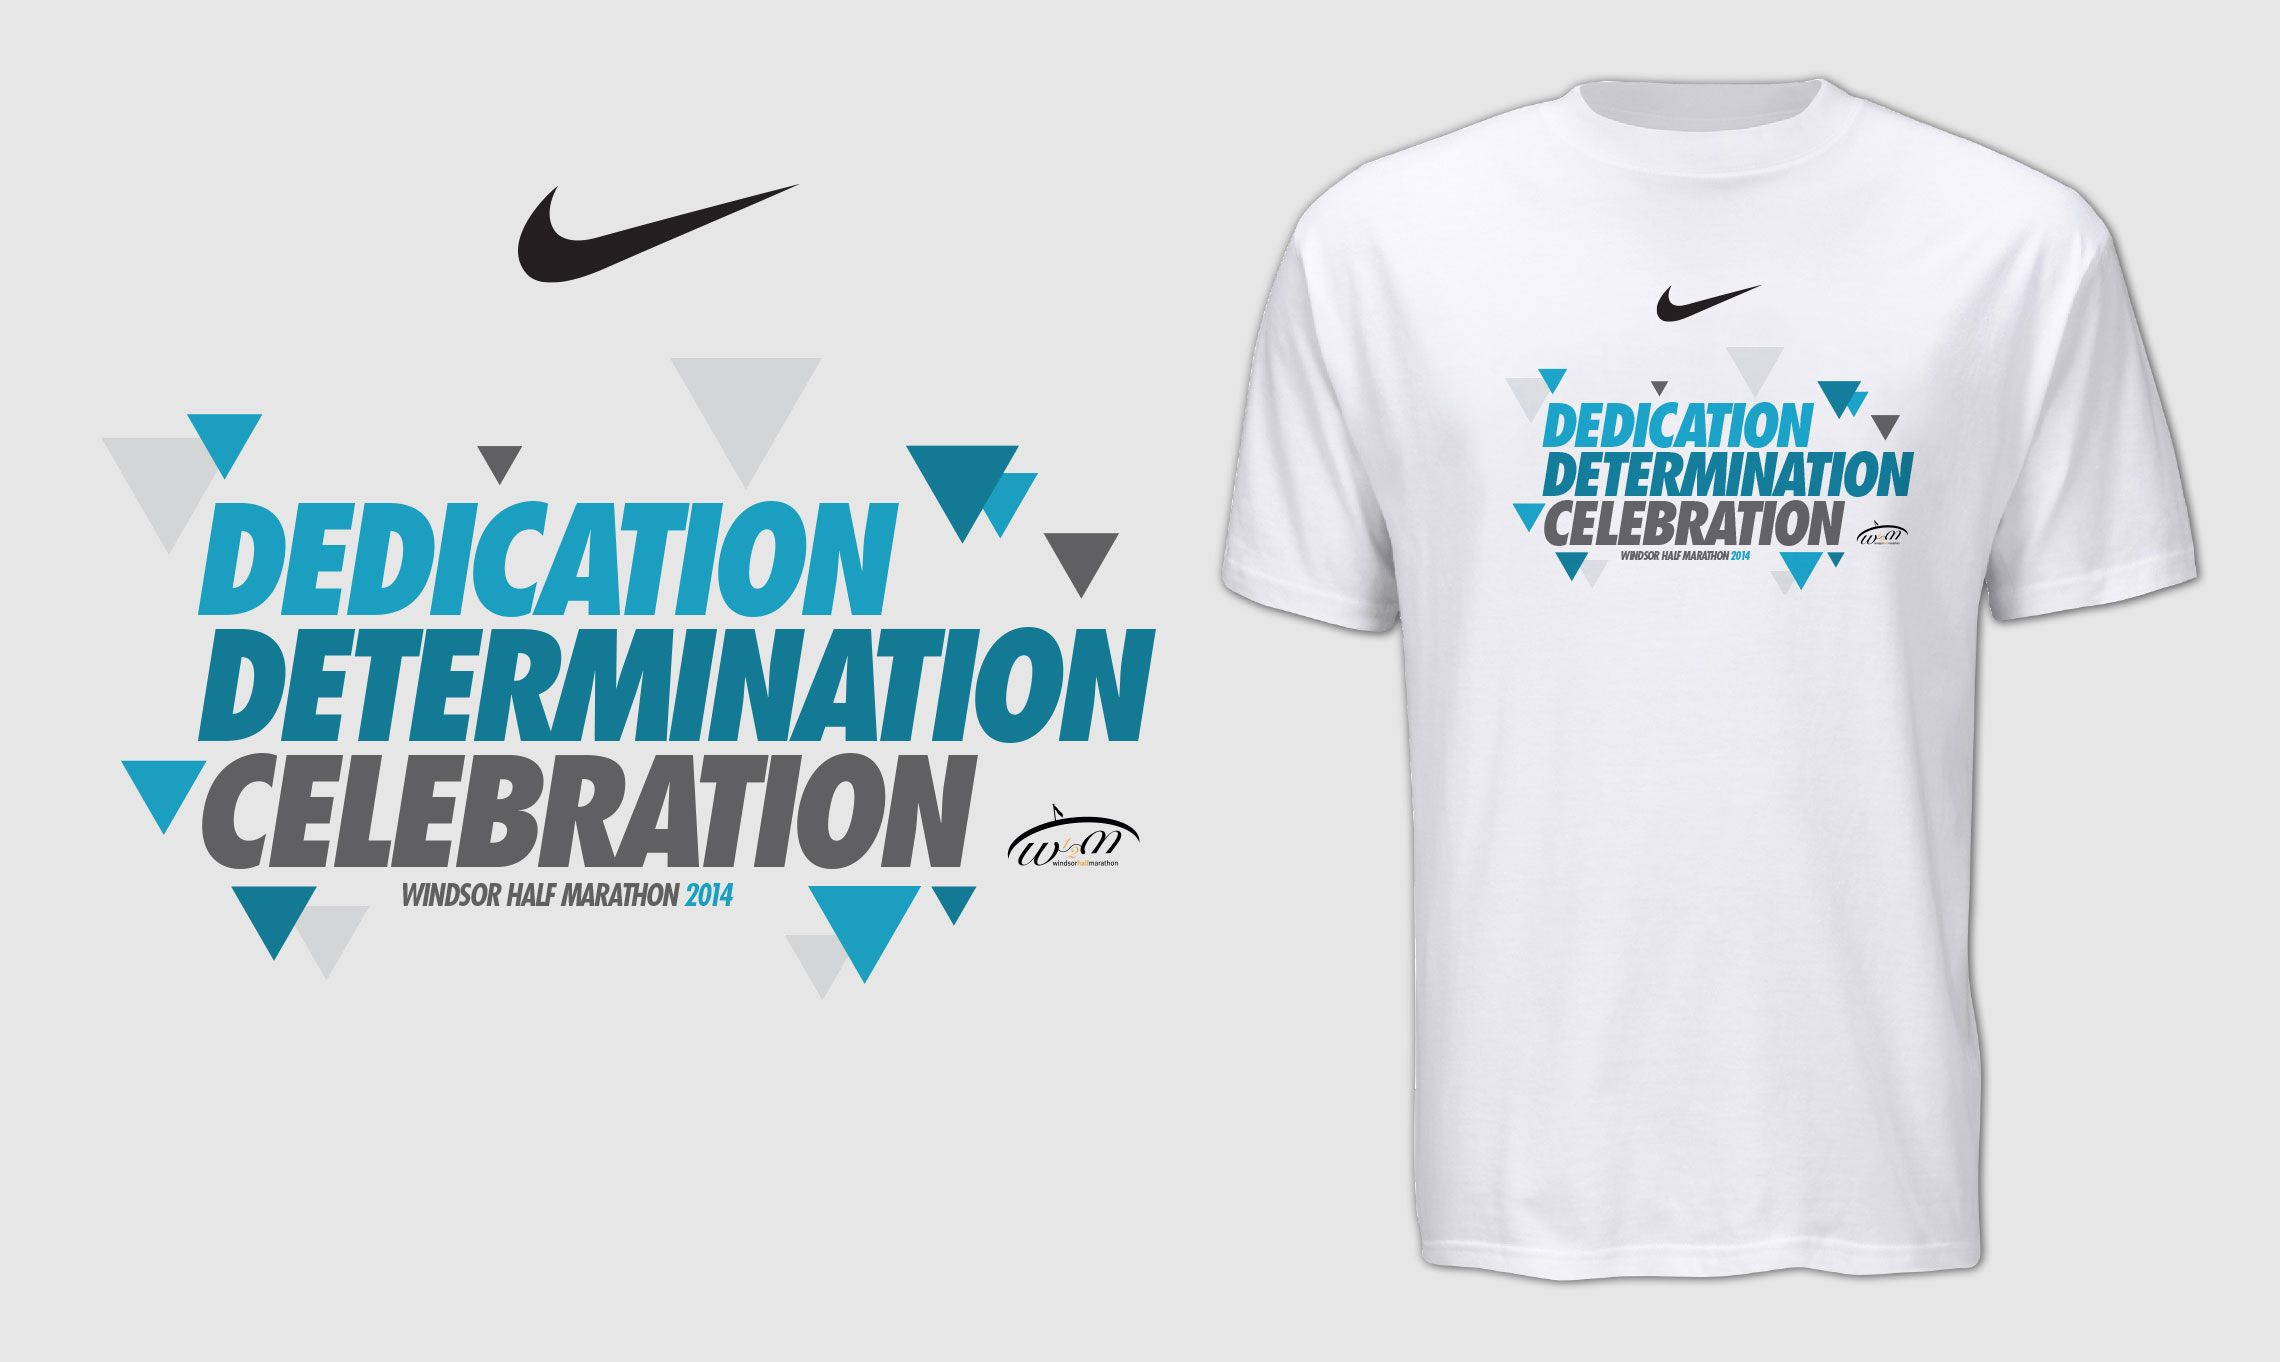 Nike Quote T Shirts Google Search Shirts With Sayings Basketball Shirt Designs Basketball Shirts